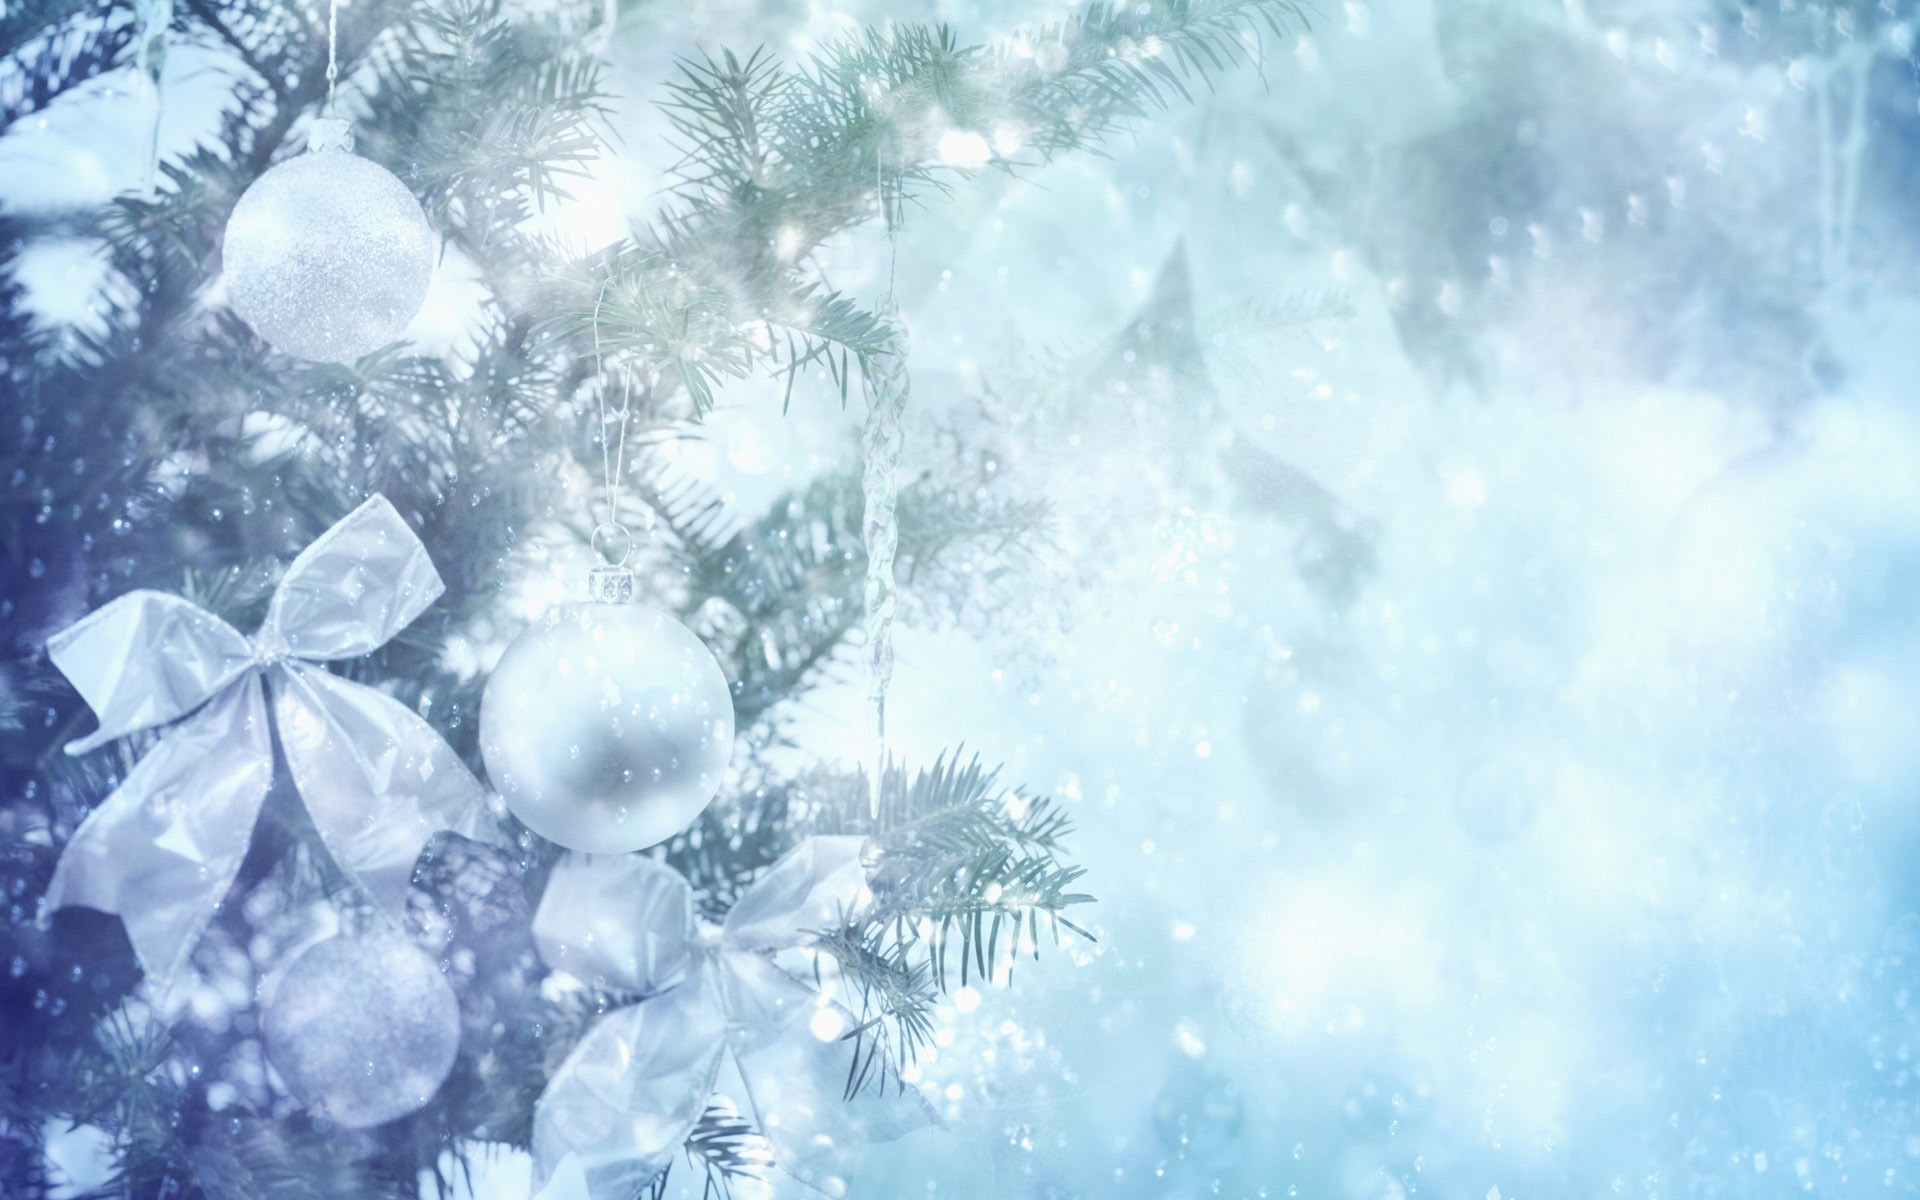 Silver Holidays Background Wallpaper 1920x1200 26597